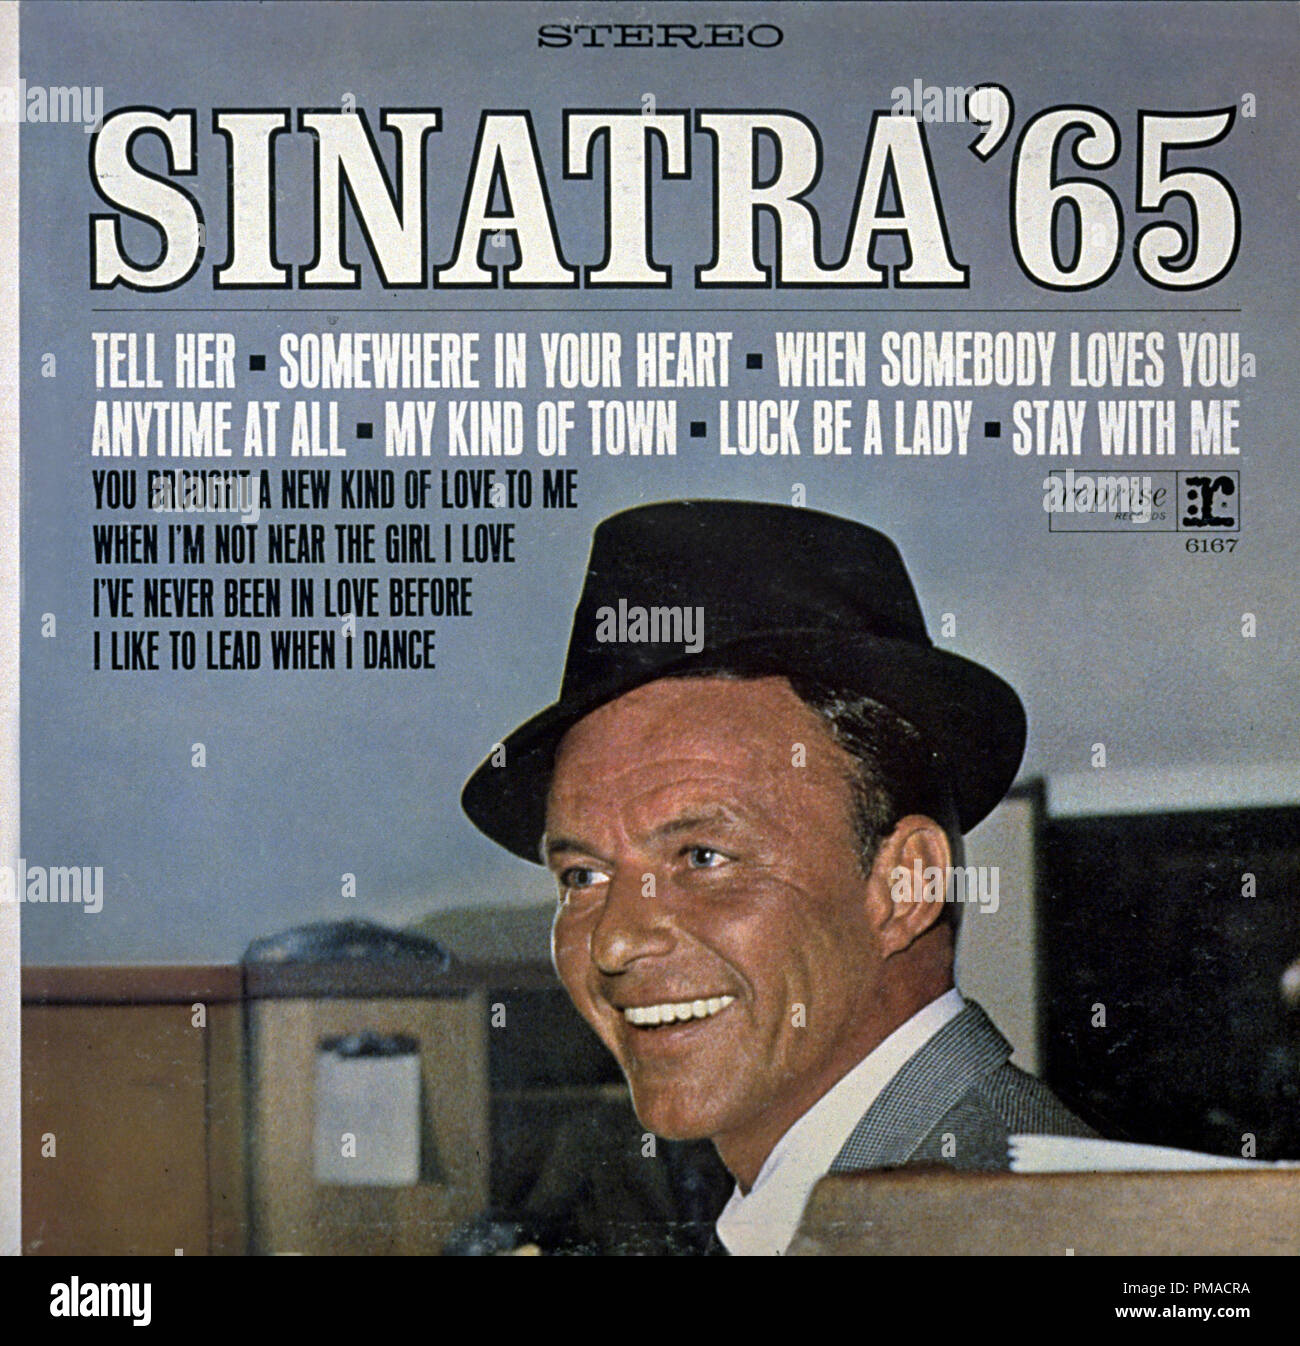 Sinatra '65: The Singer Today is a 1965 compilation album by Frank Sinatra  File Reference # 32368_418THA - Stock Image